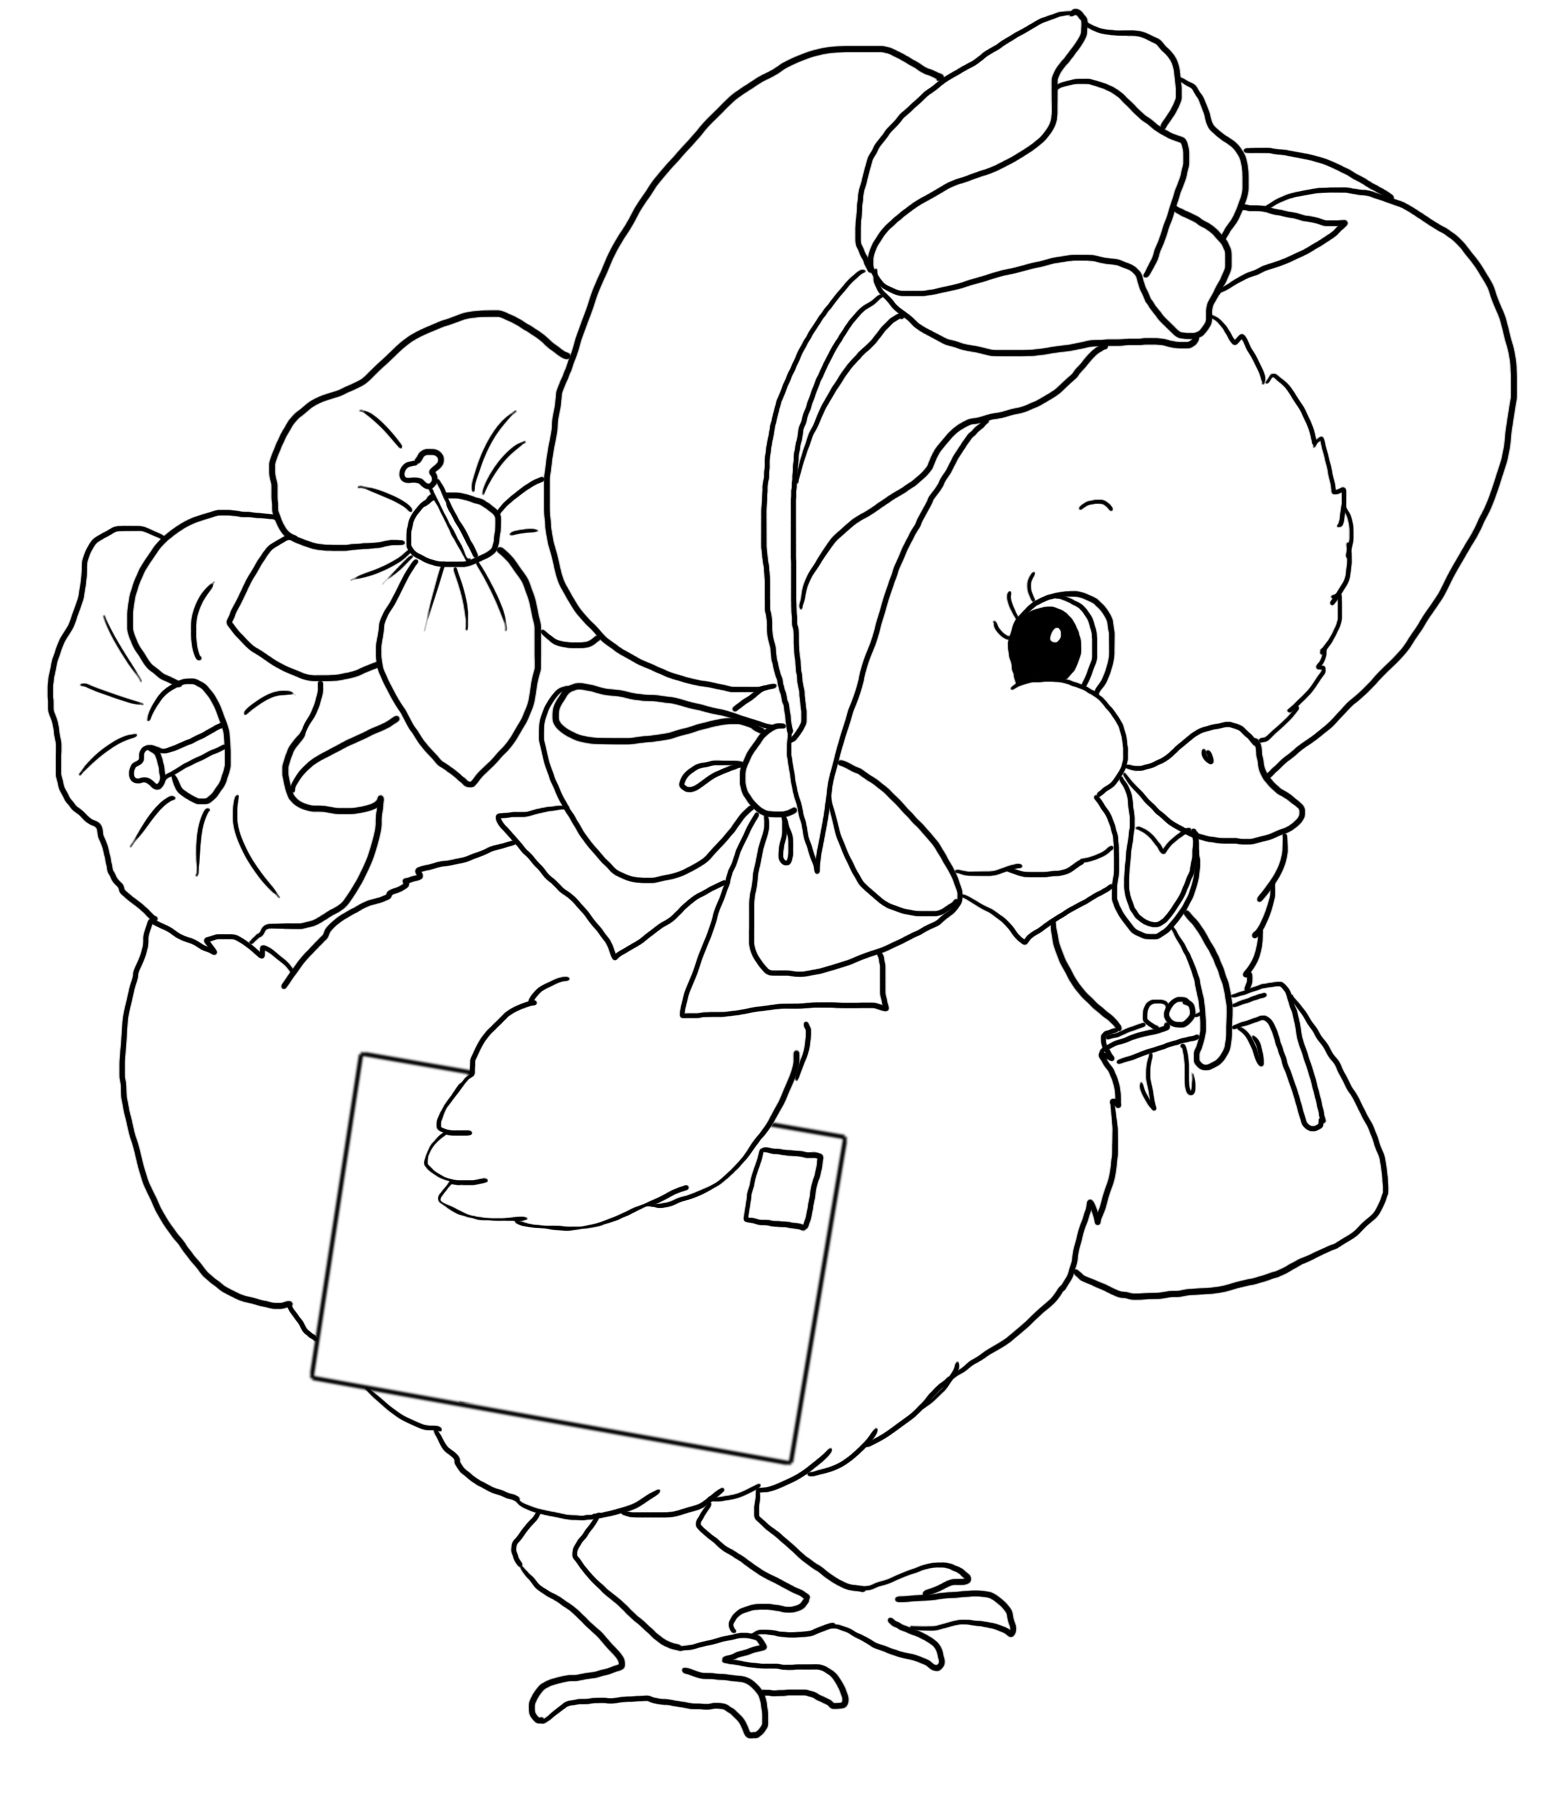 coloring pages easter - photo#25